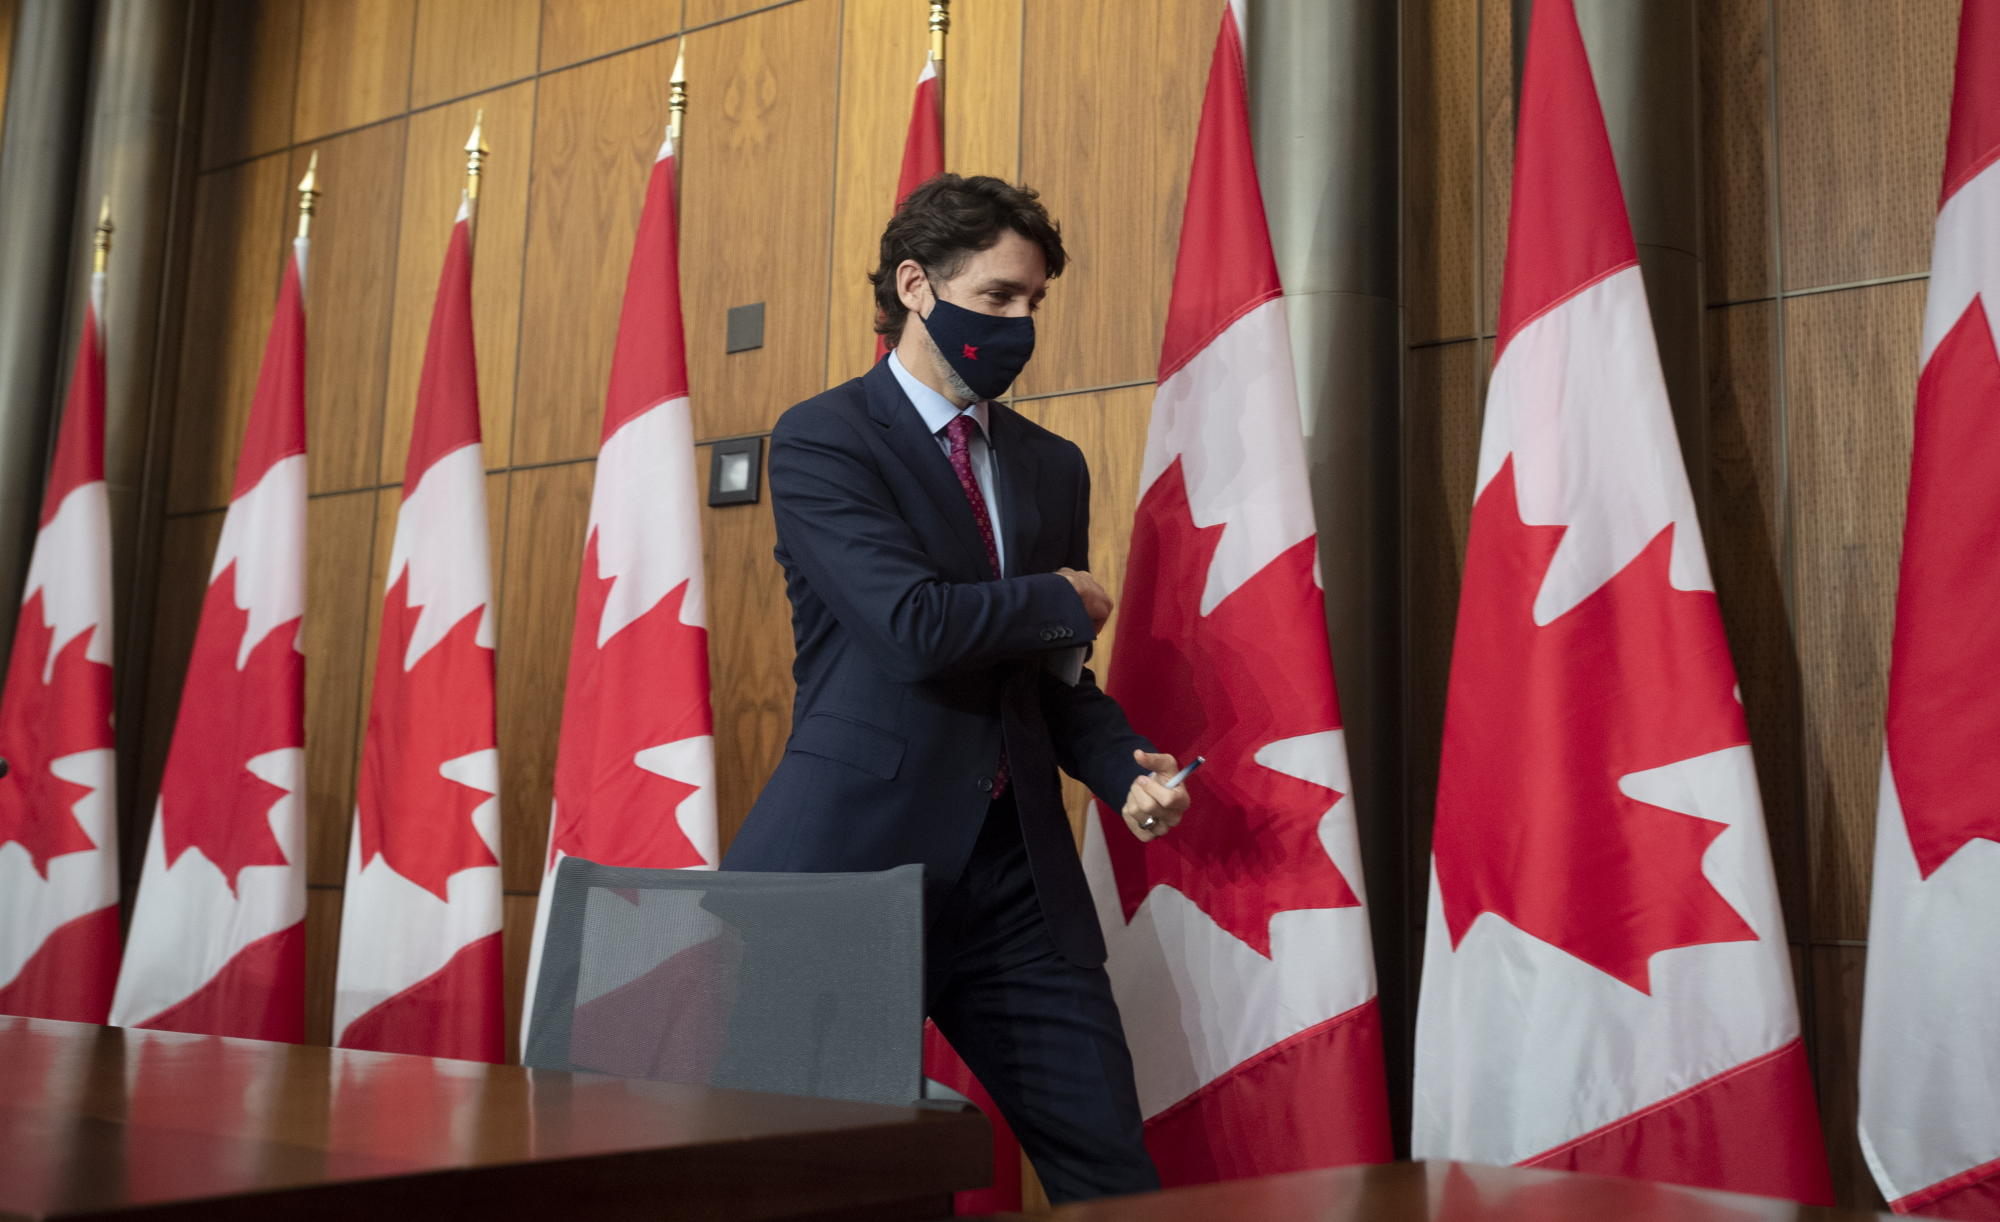 PM Trudeau compares Canada vaccine rollout to U.S., confirms 500,000 Pfizer-BioNTech doses to arrive in January 2021